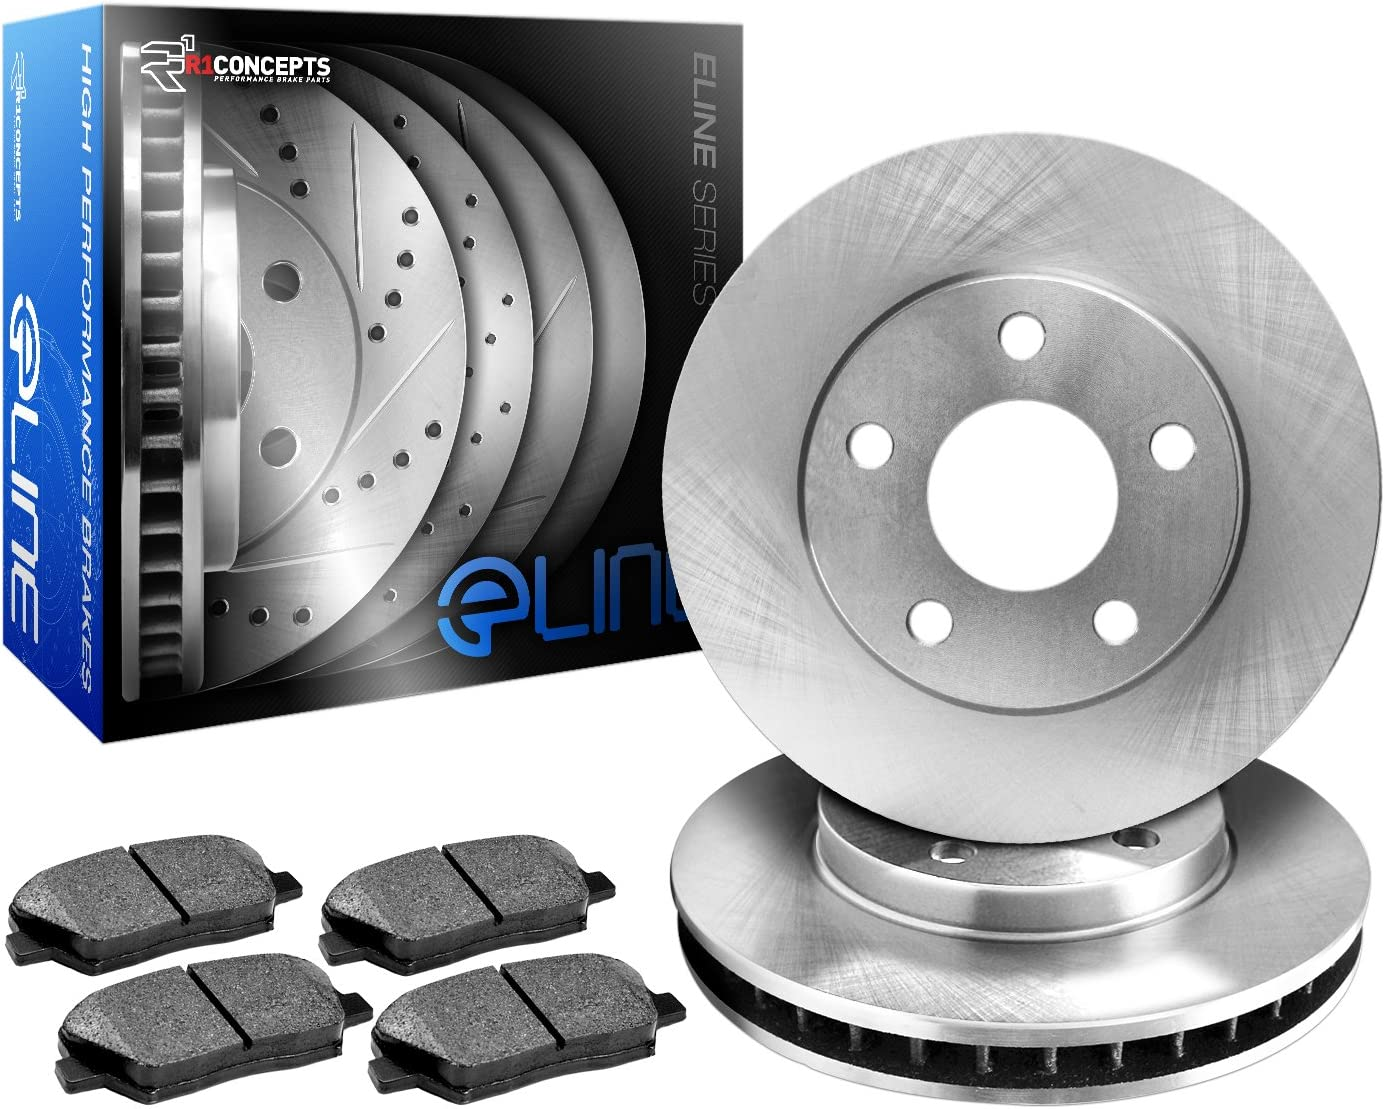 Front R1 Concepts KEOE10249 Eline Series Replacement Rotors And Ceramic Pads Kit